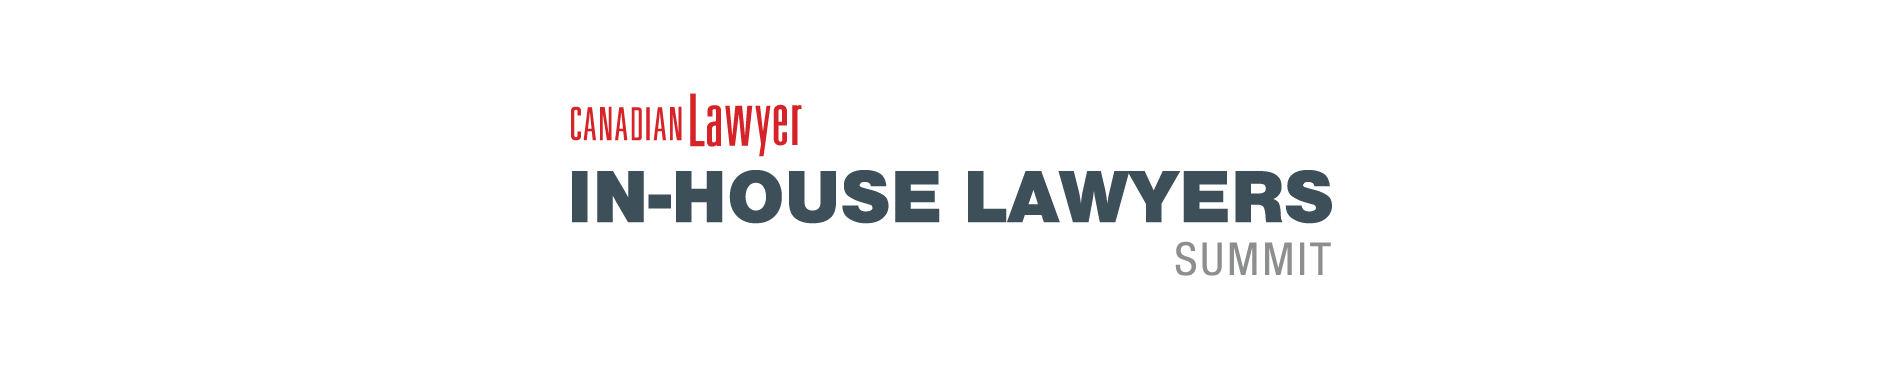 In-house Lawyers Summit Canada